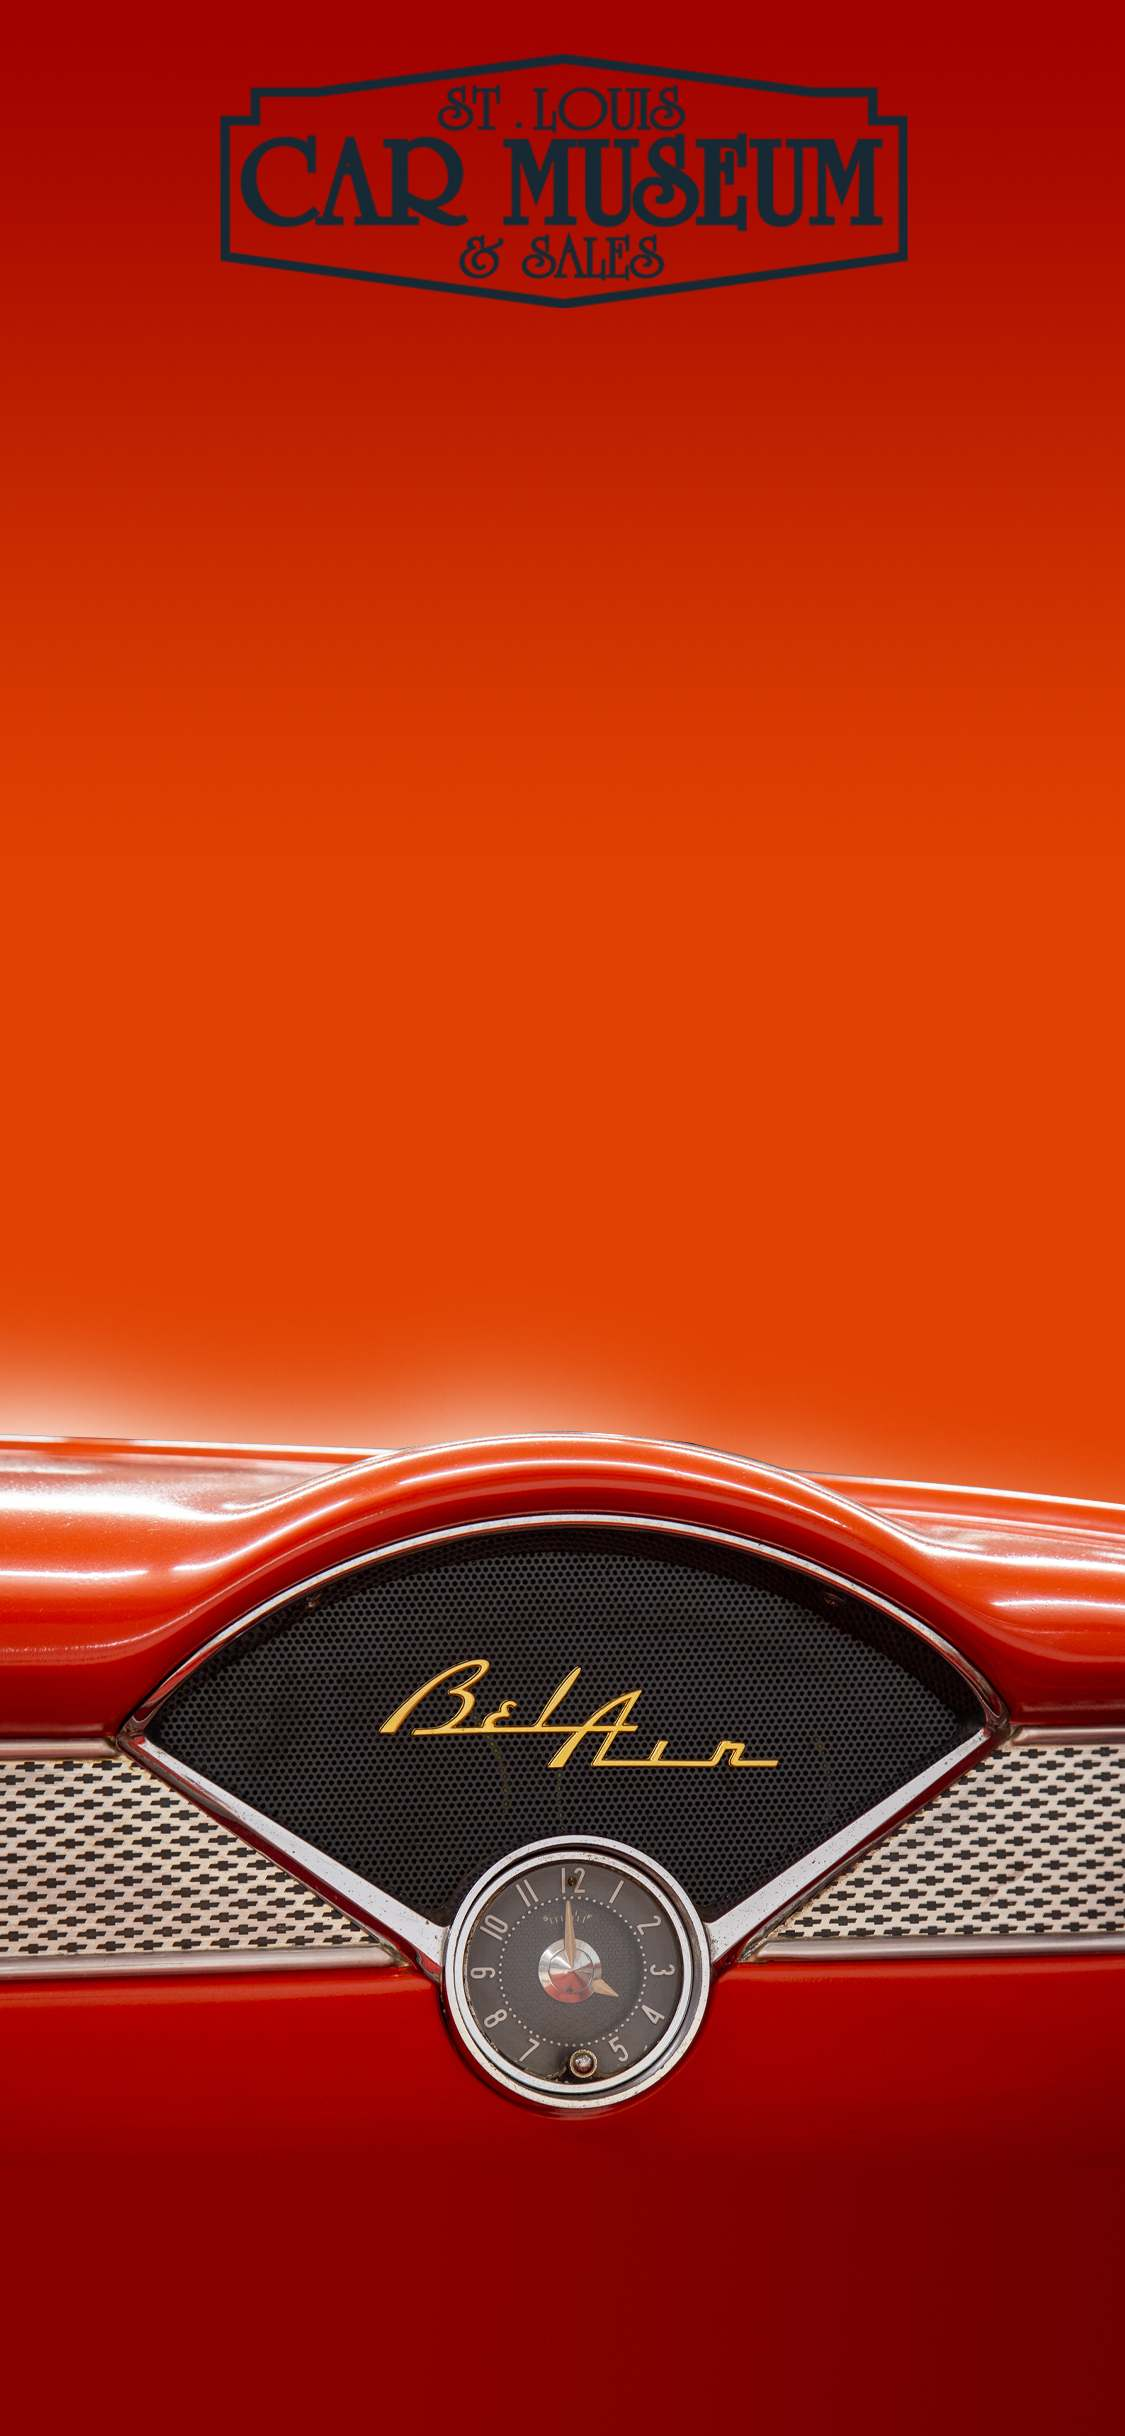 1955 Chevrolet Bel Air Car Phone Background